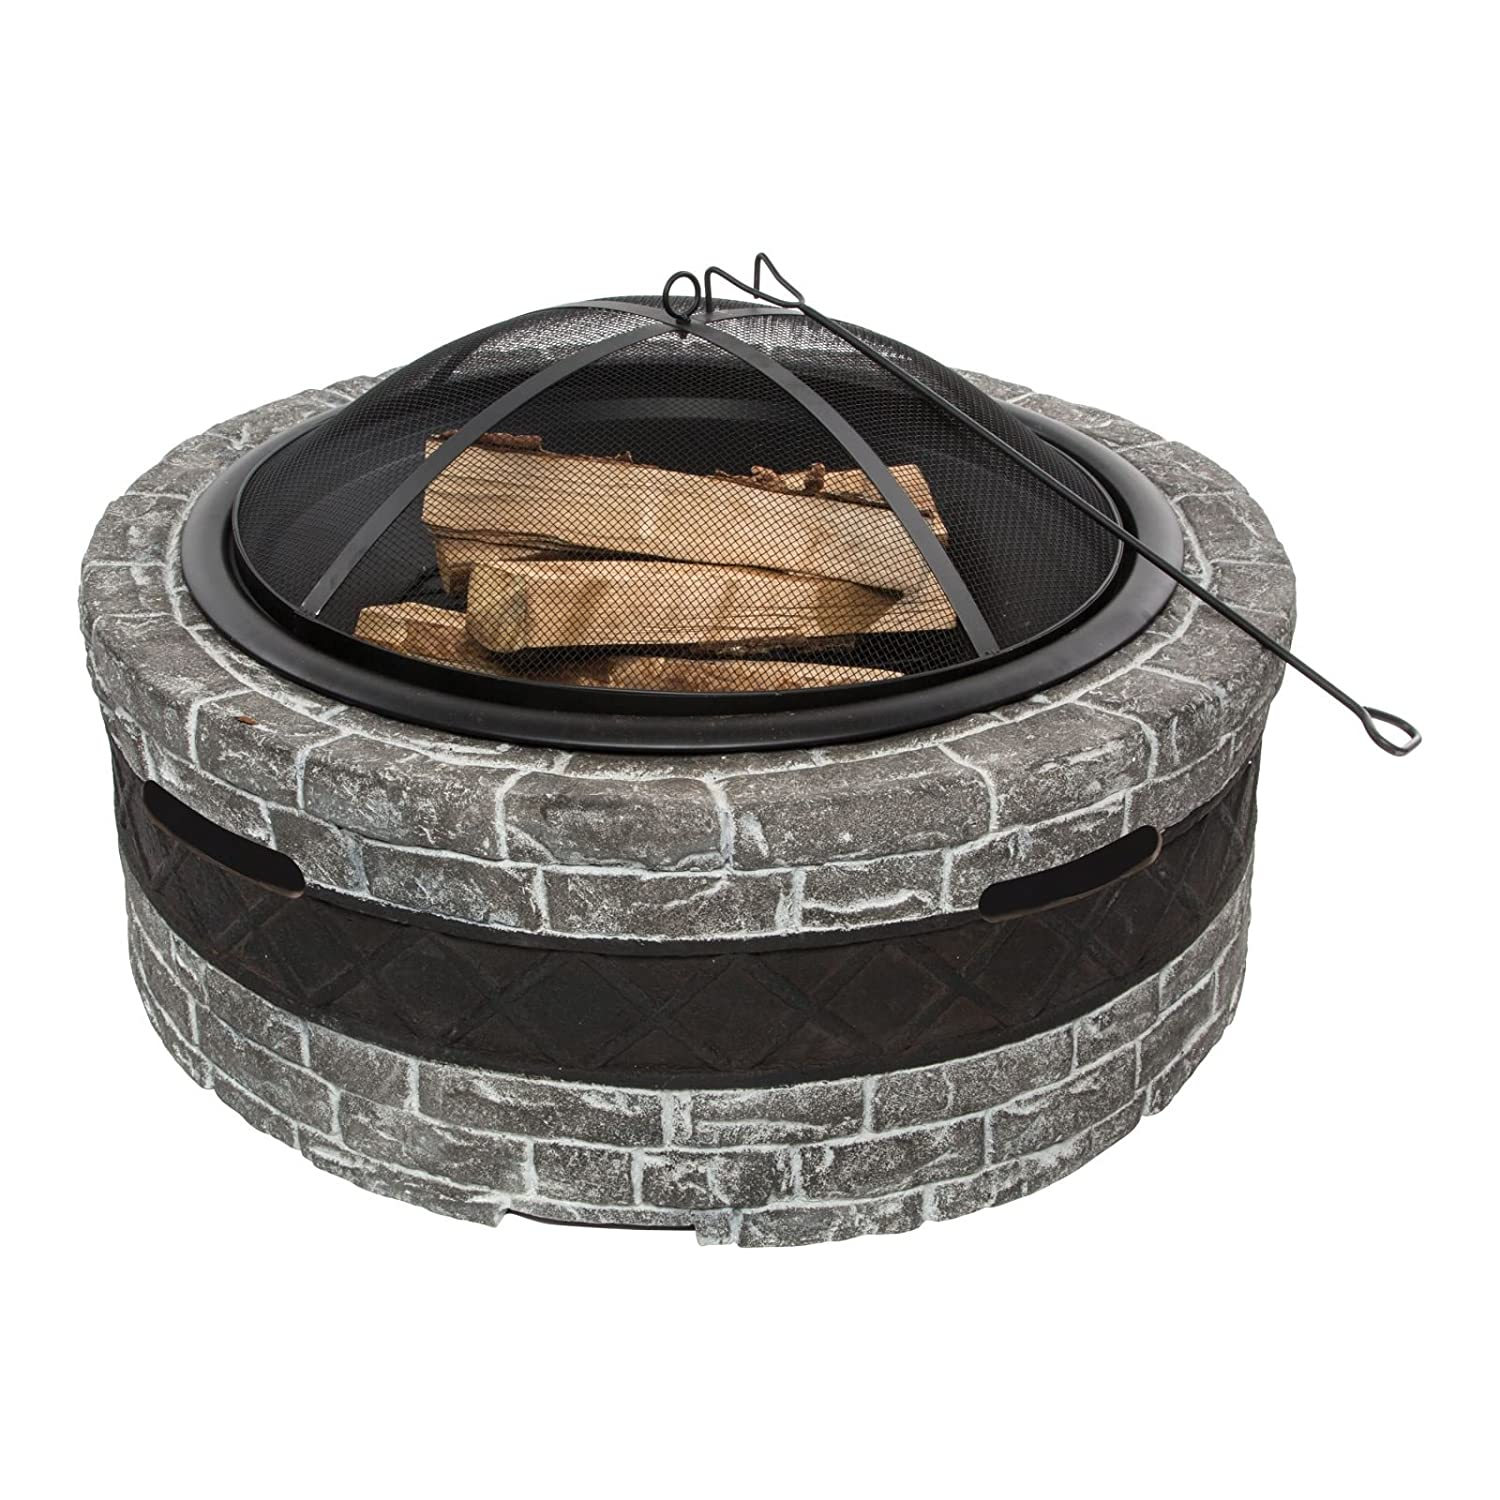 Sun Joe SJFP28-STN-CS Fire Joe 28 Charcoal Gray Fire Pit